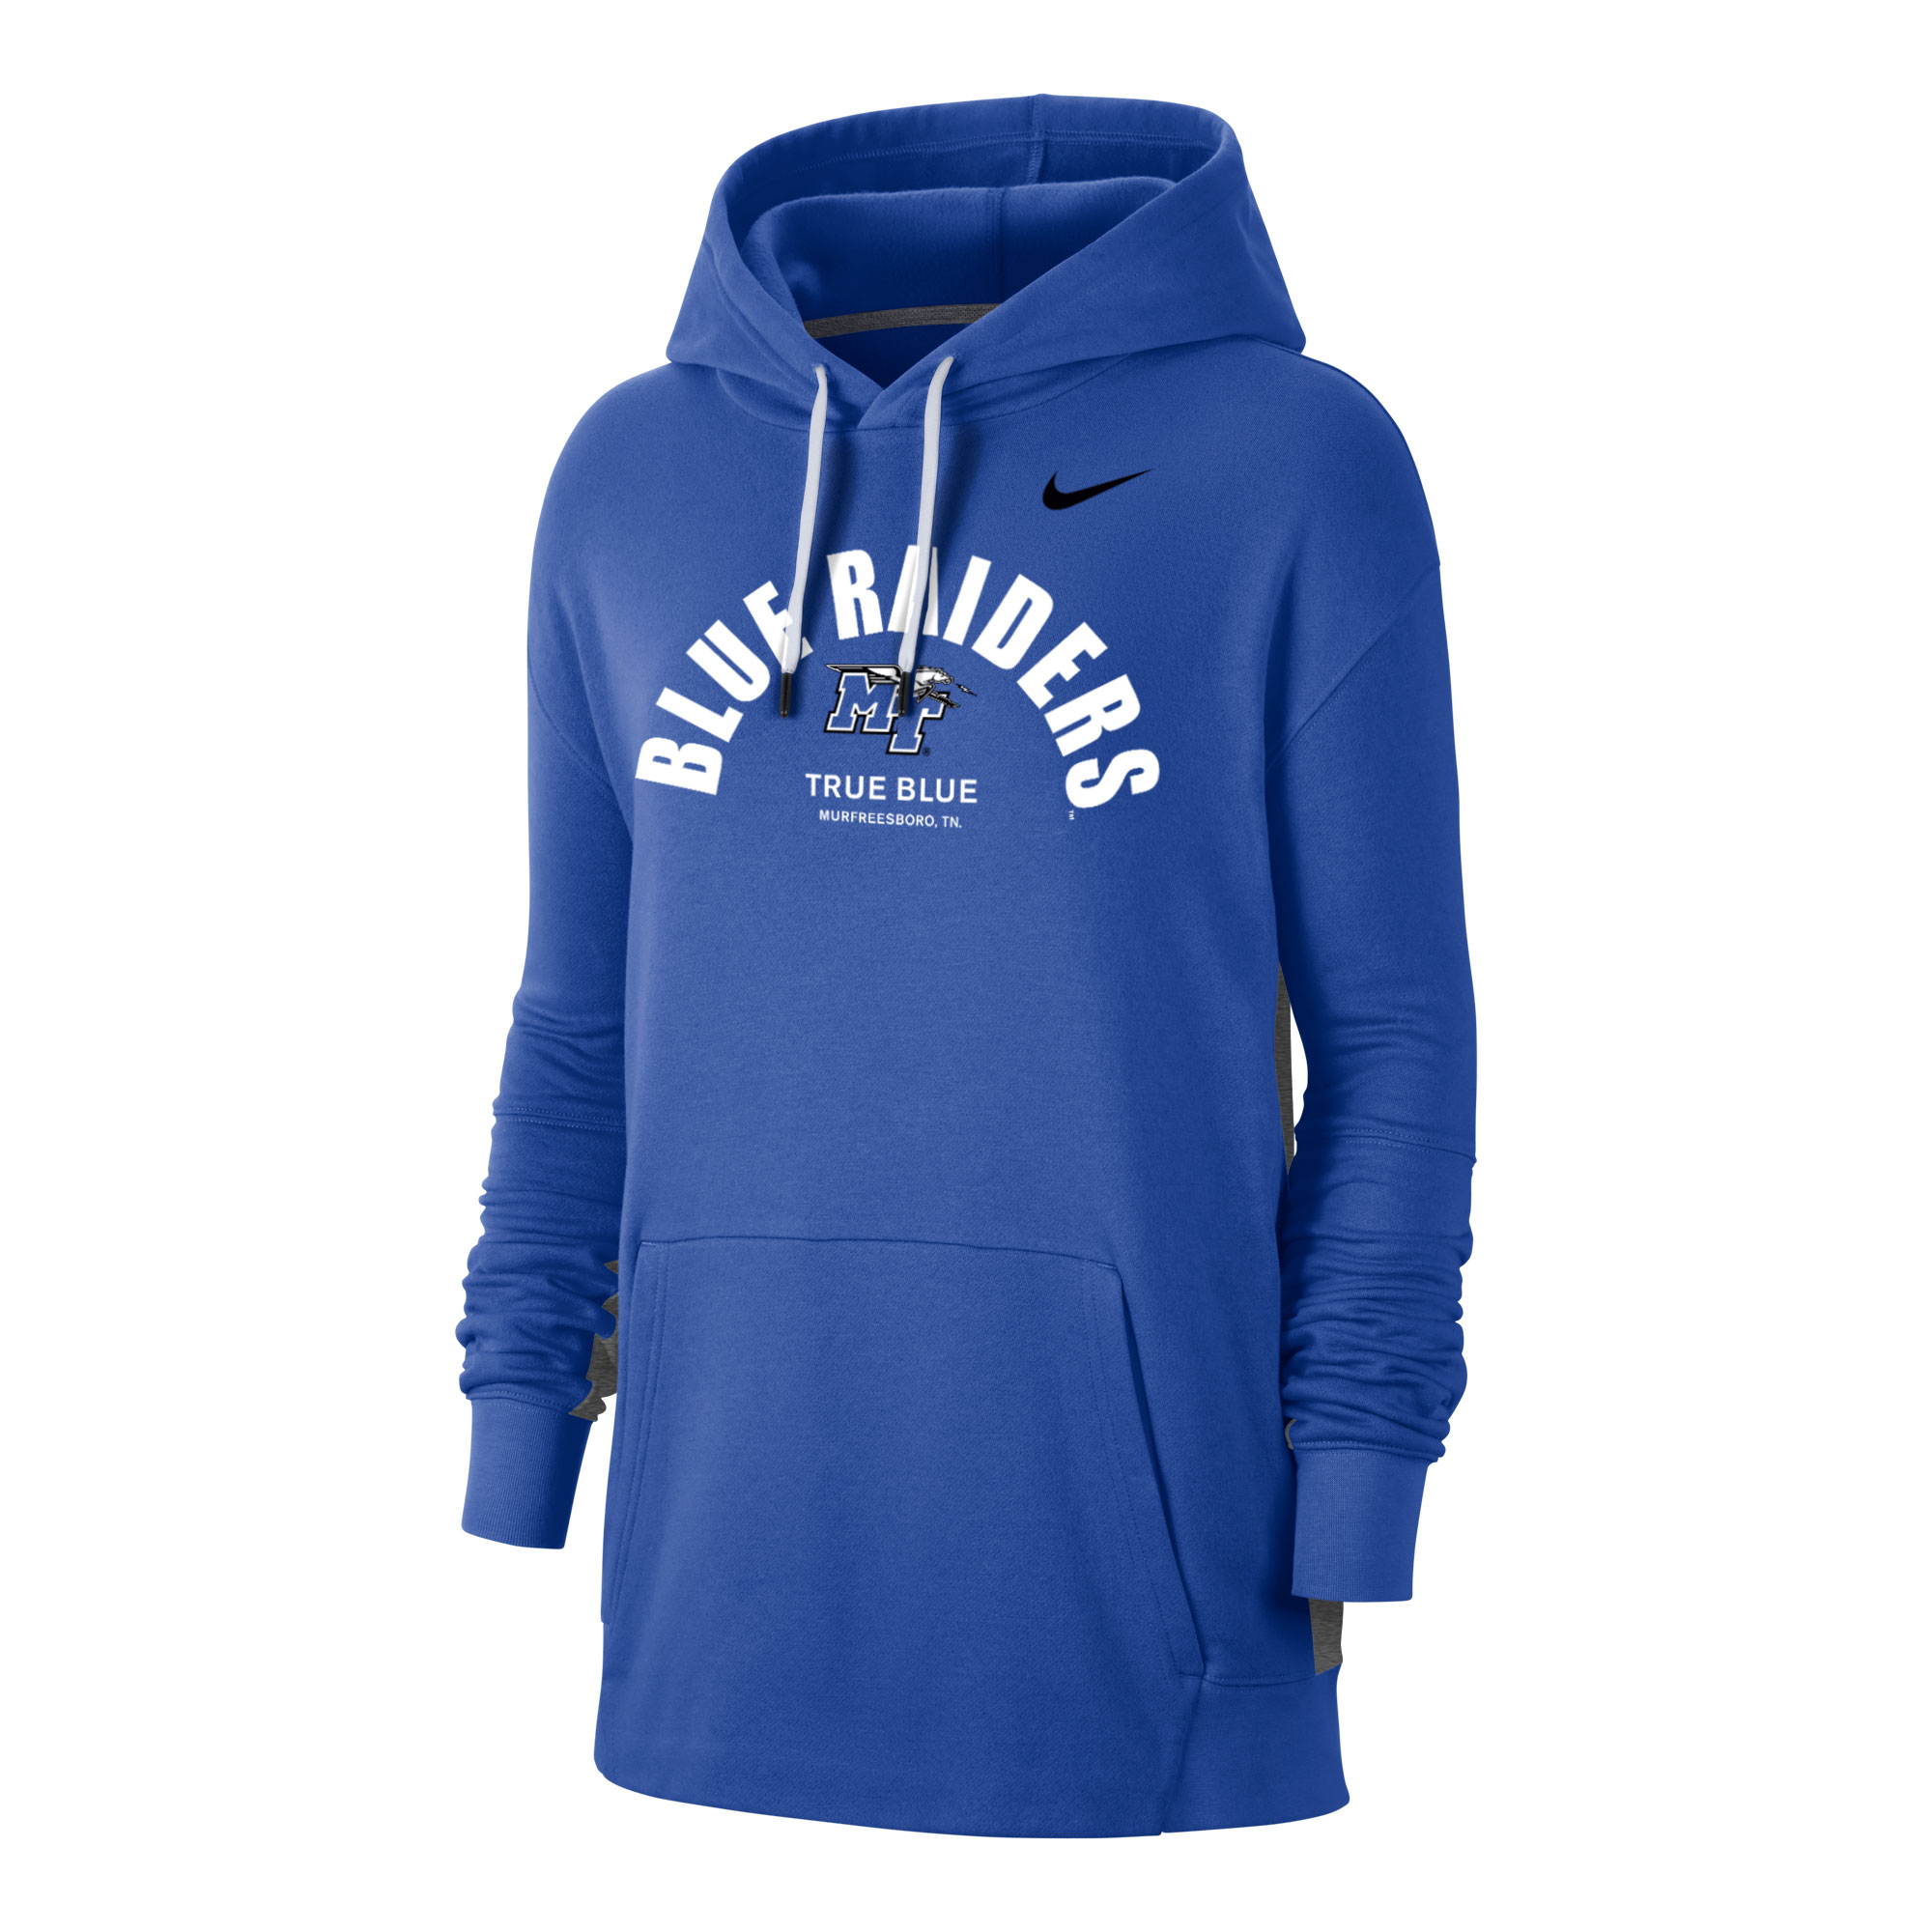 Blue Raiders True Blue Women's Fleece PO Nike® Hoodie